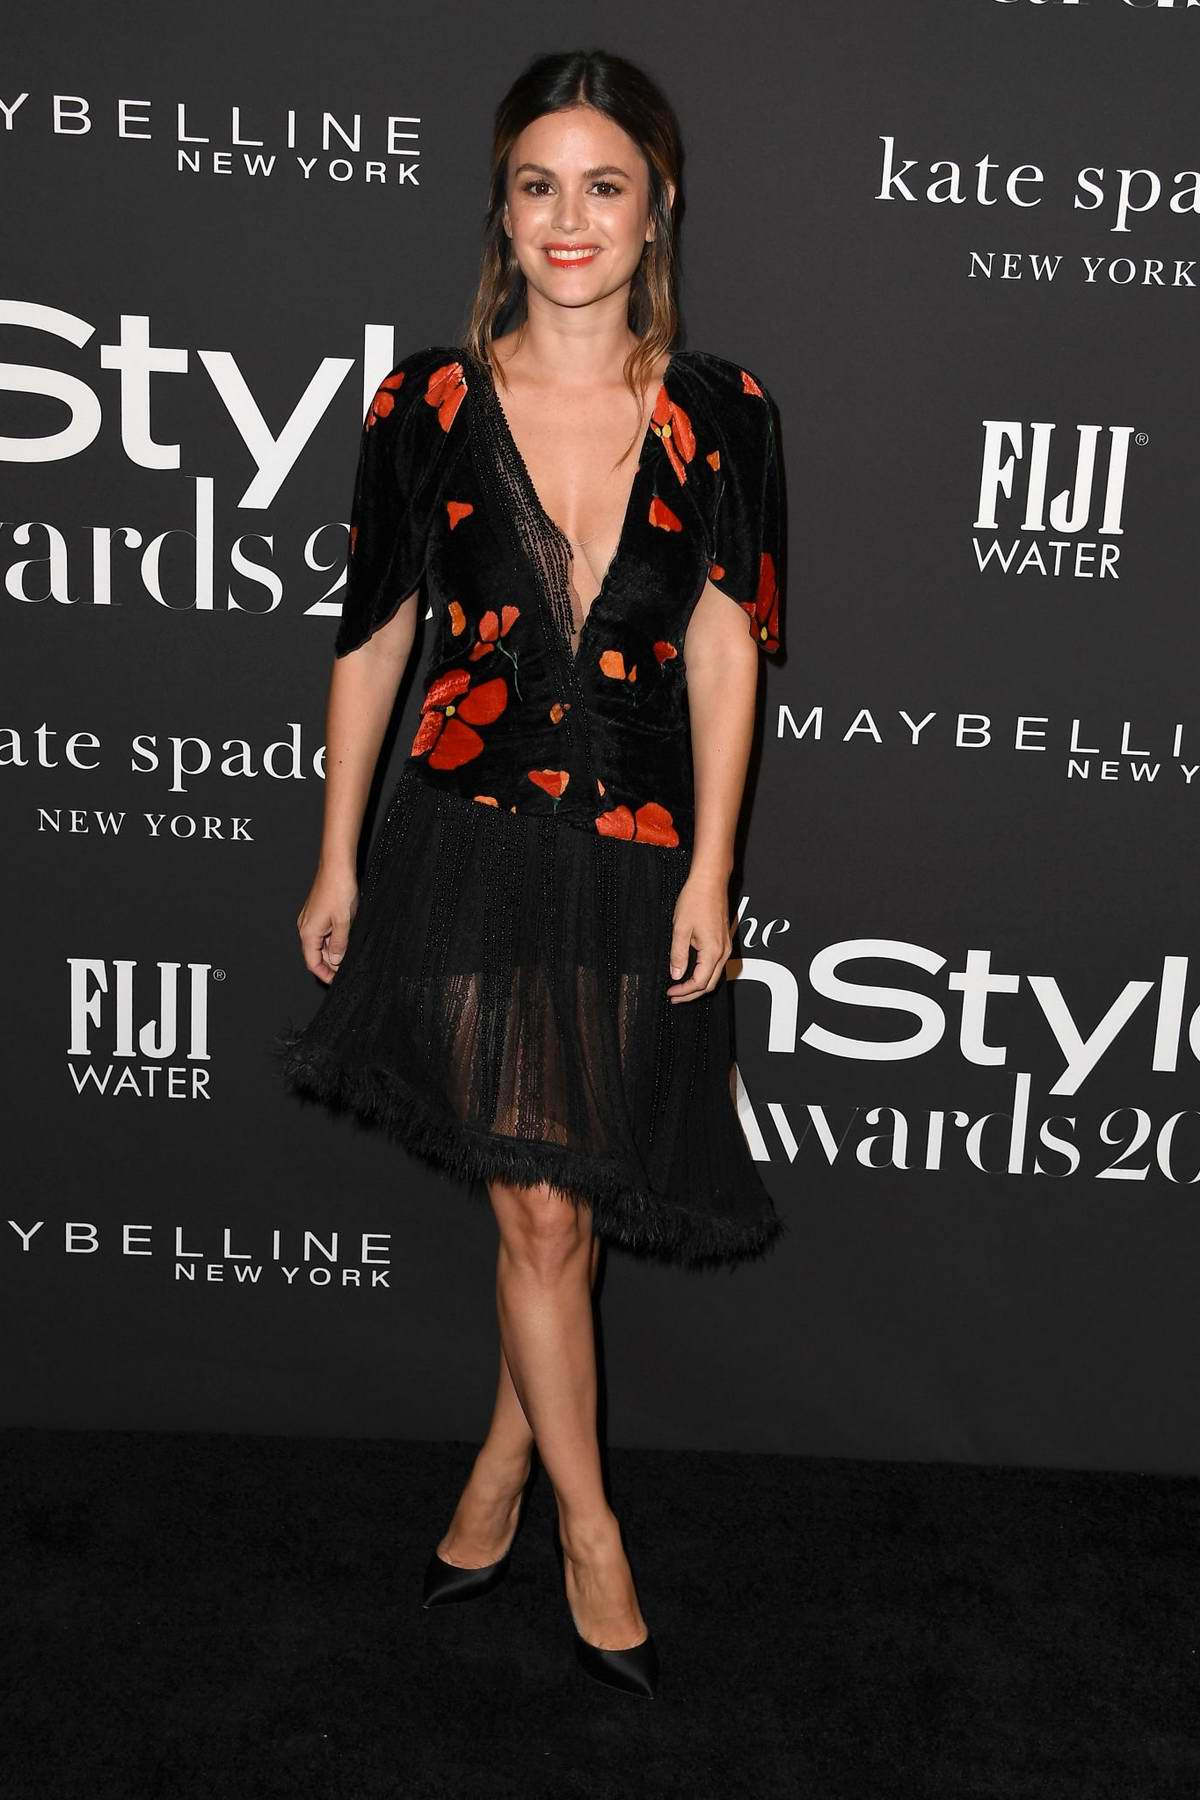 Rachel Bilson attends the 5th Annual InStyle Awards in Los Angeles